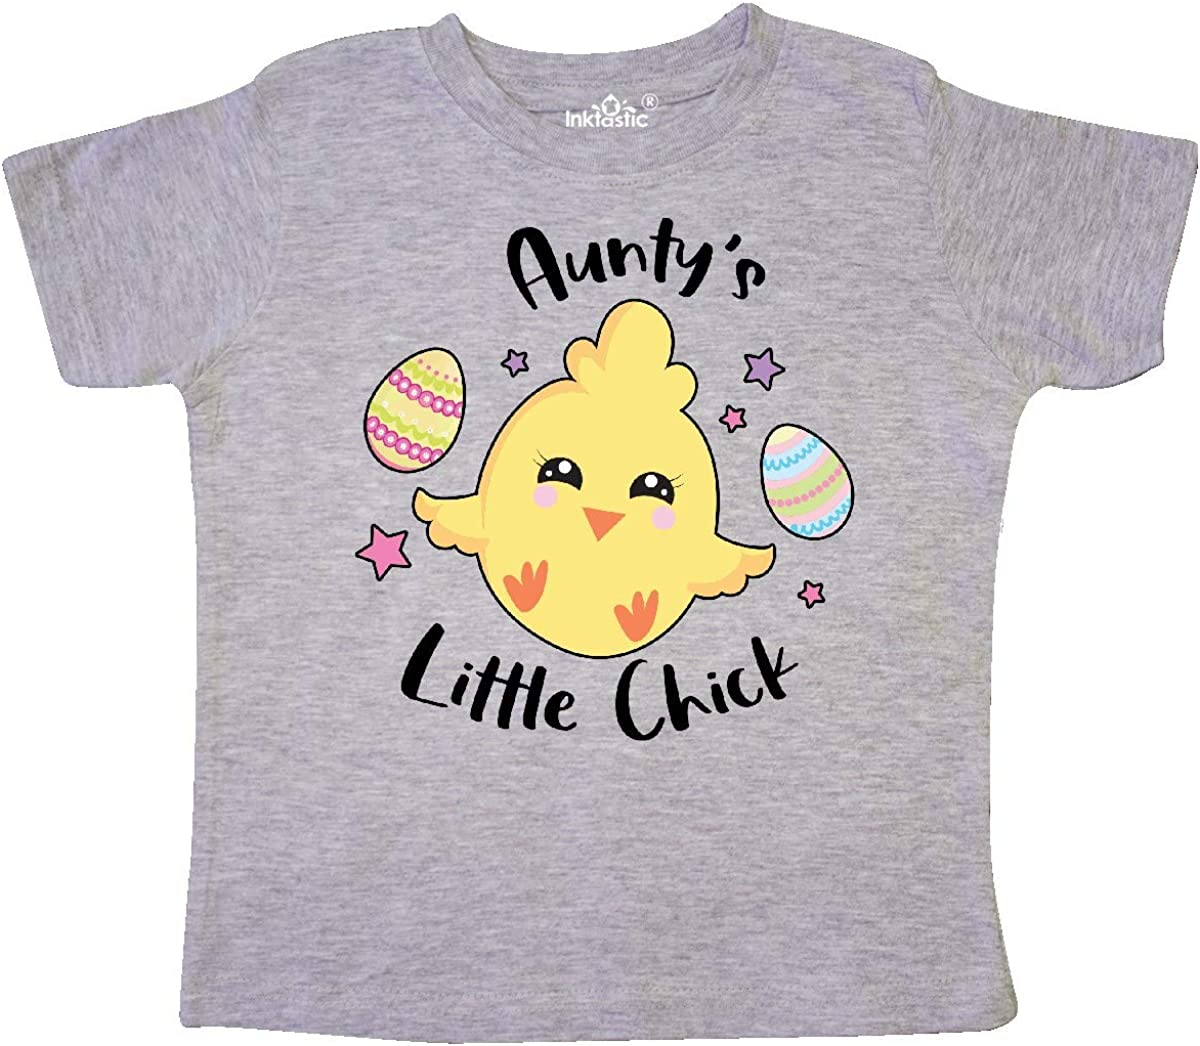 inktastic Happy Easter Auntys Little Chick Toddler T-Shirt